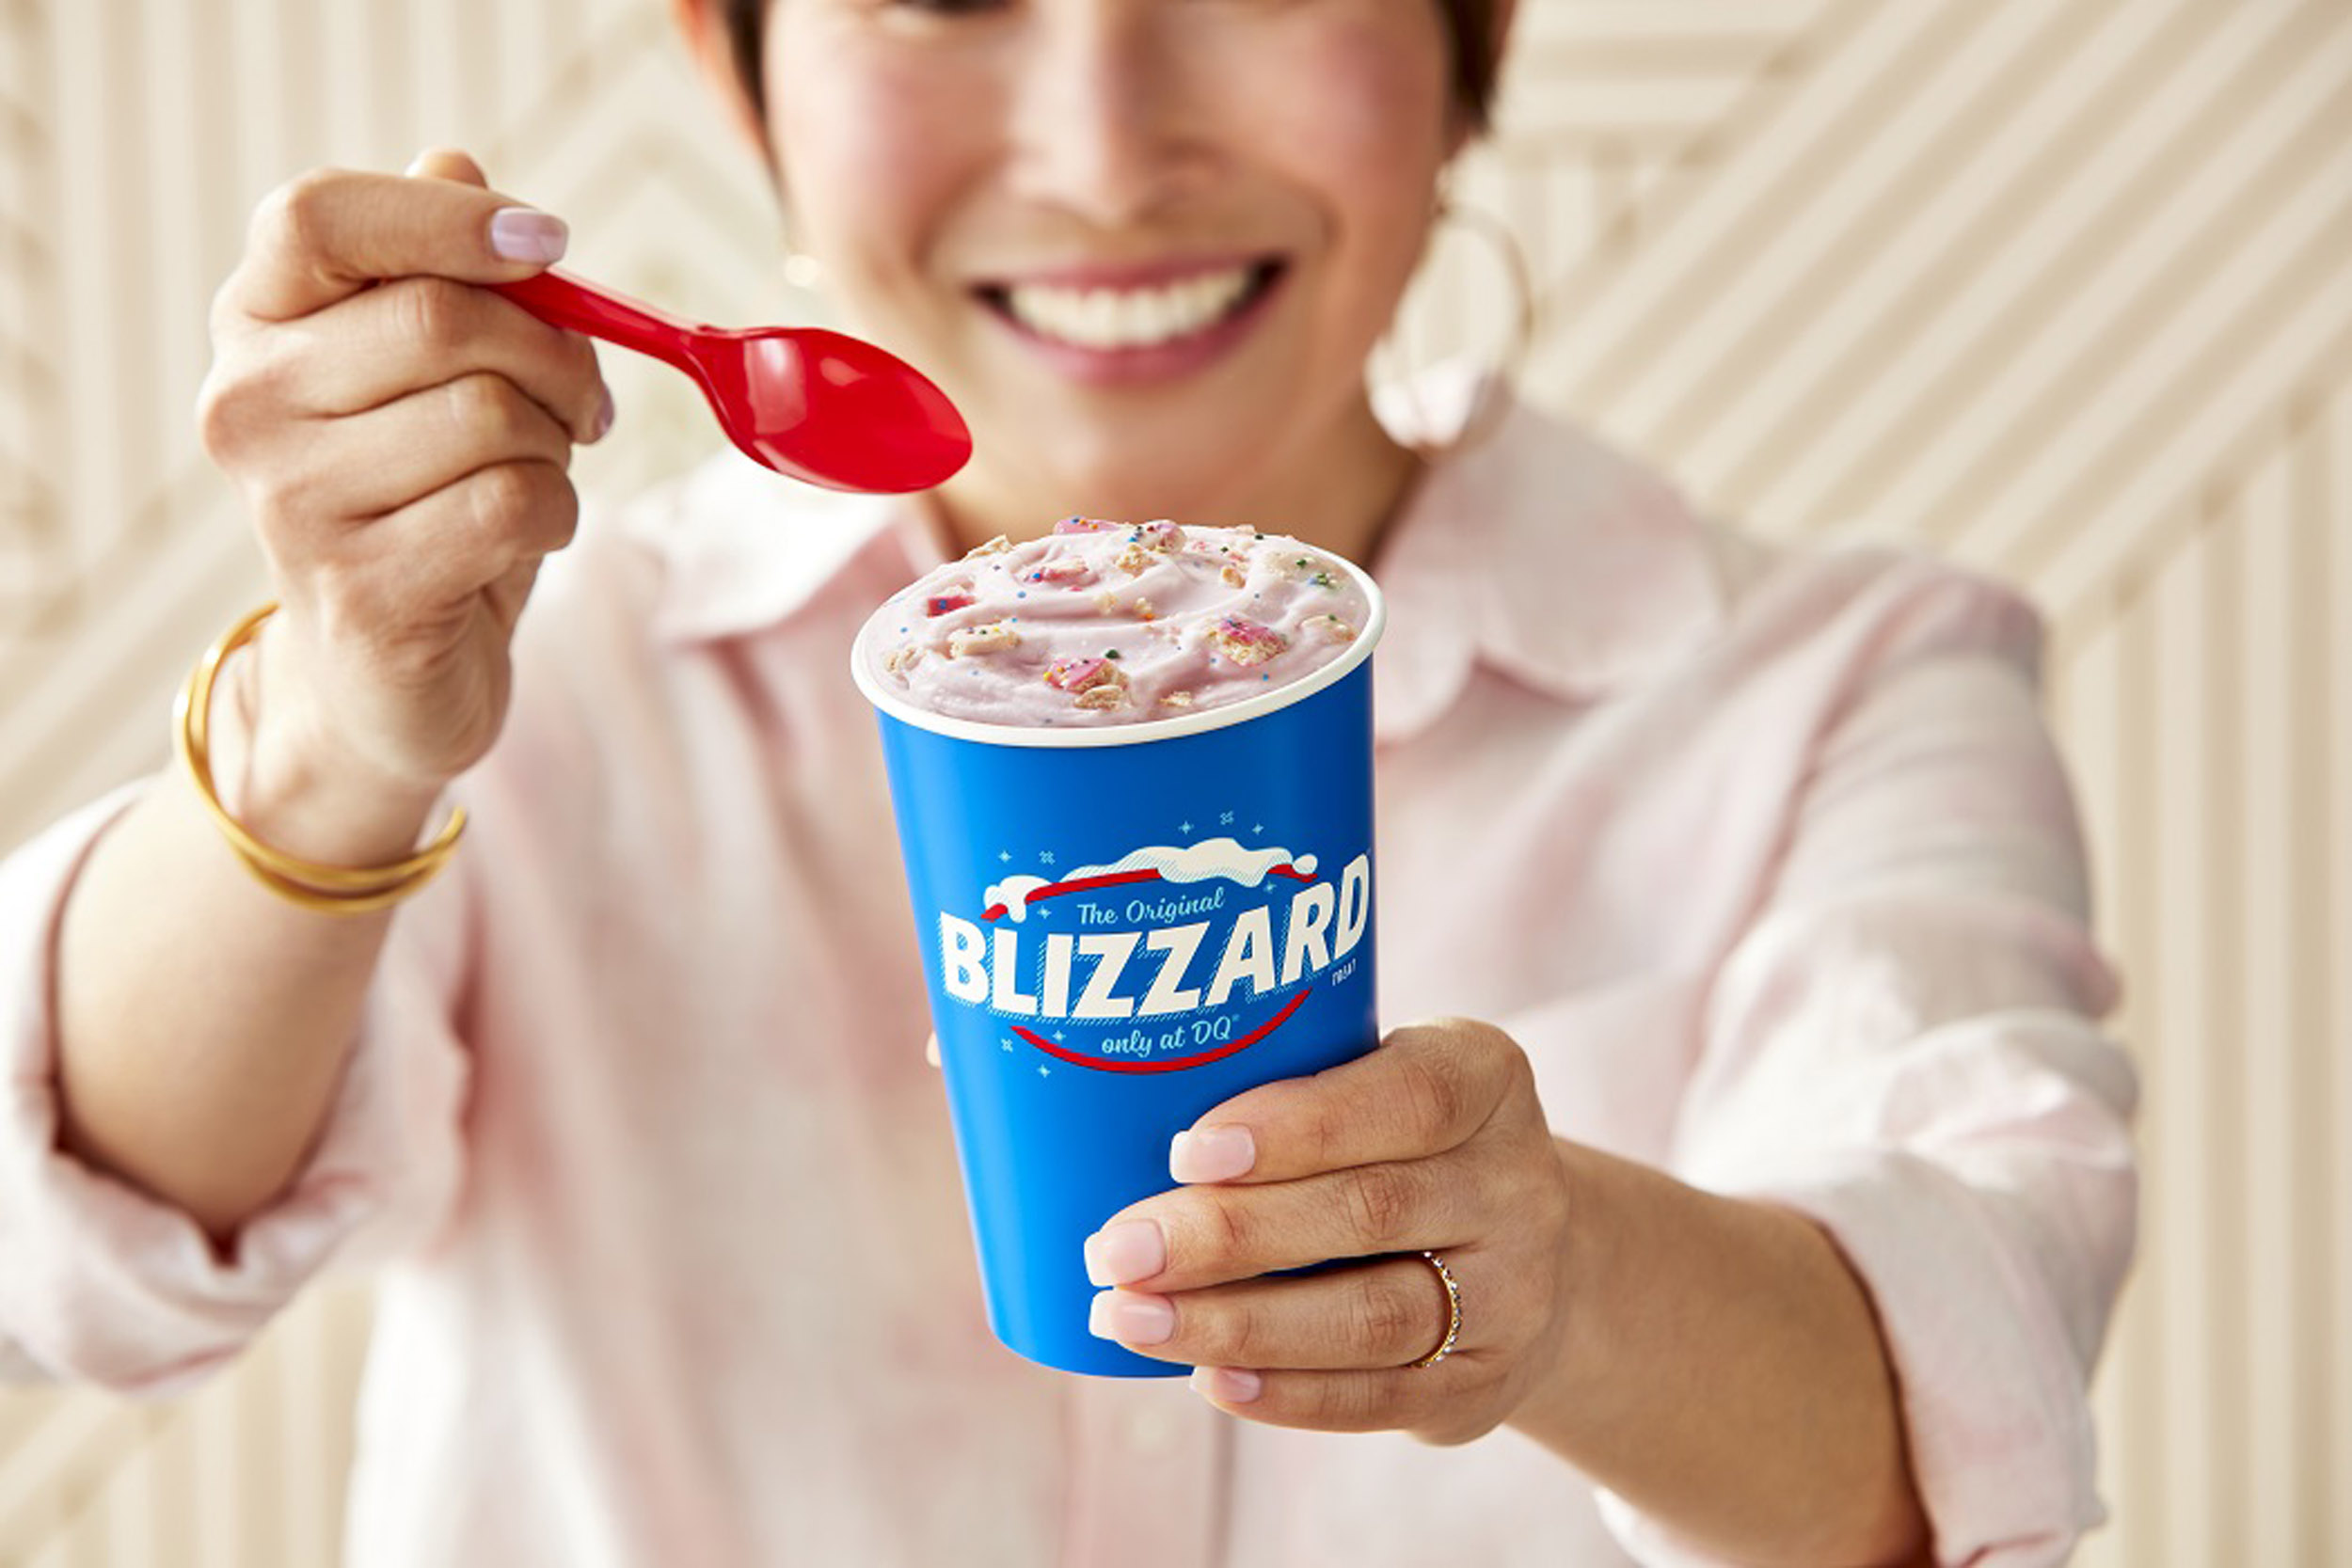 Frosted Animal Cookie blizzard